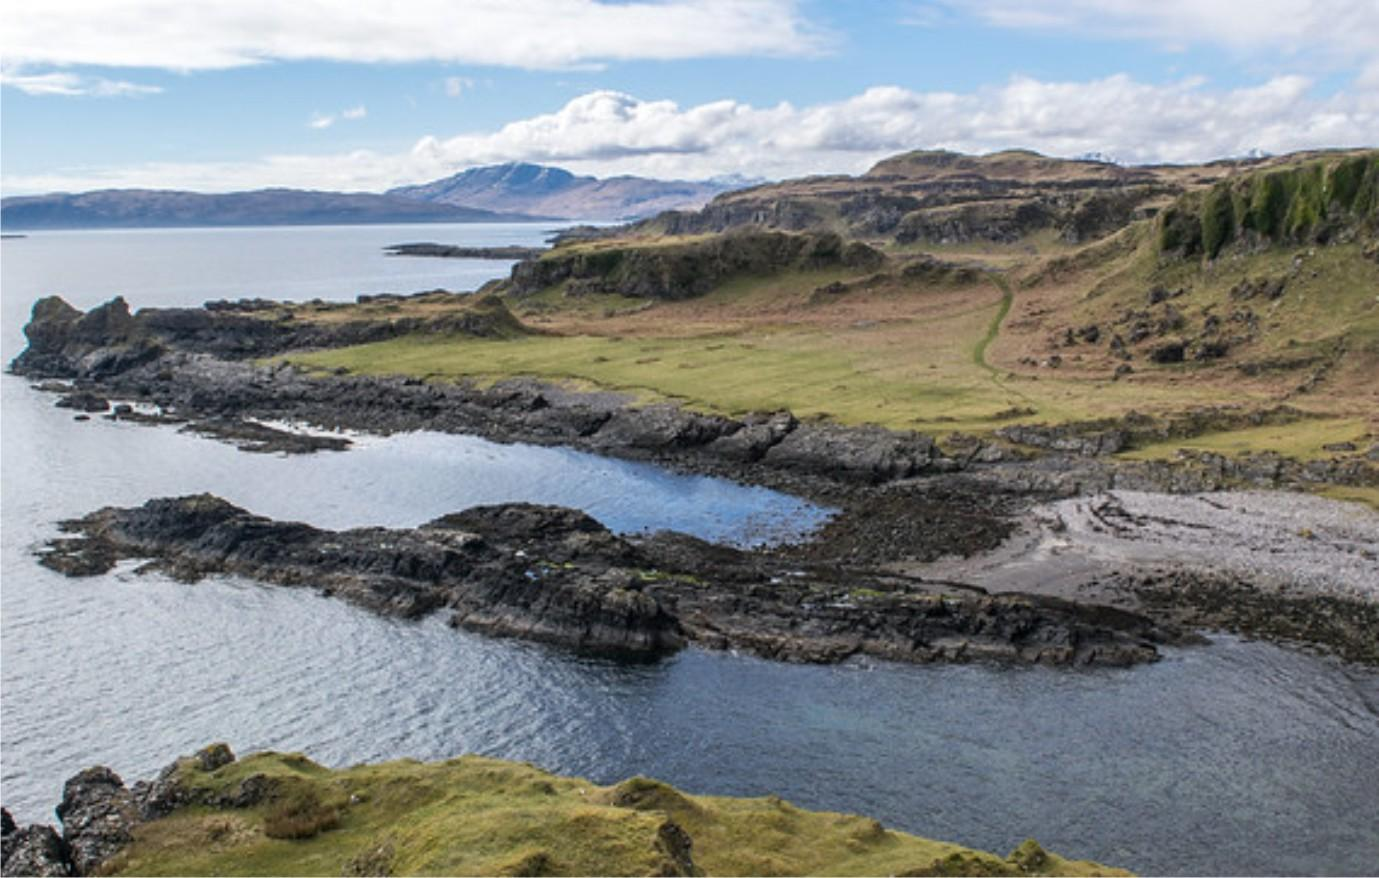 The fossil of the world's oldest known bug was found on the island of Kerrera in Scotland